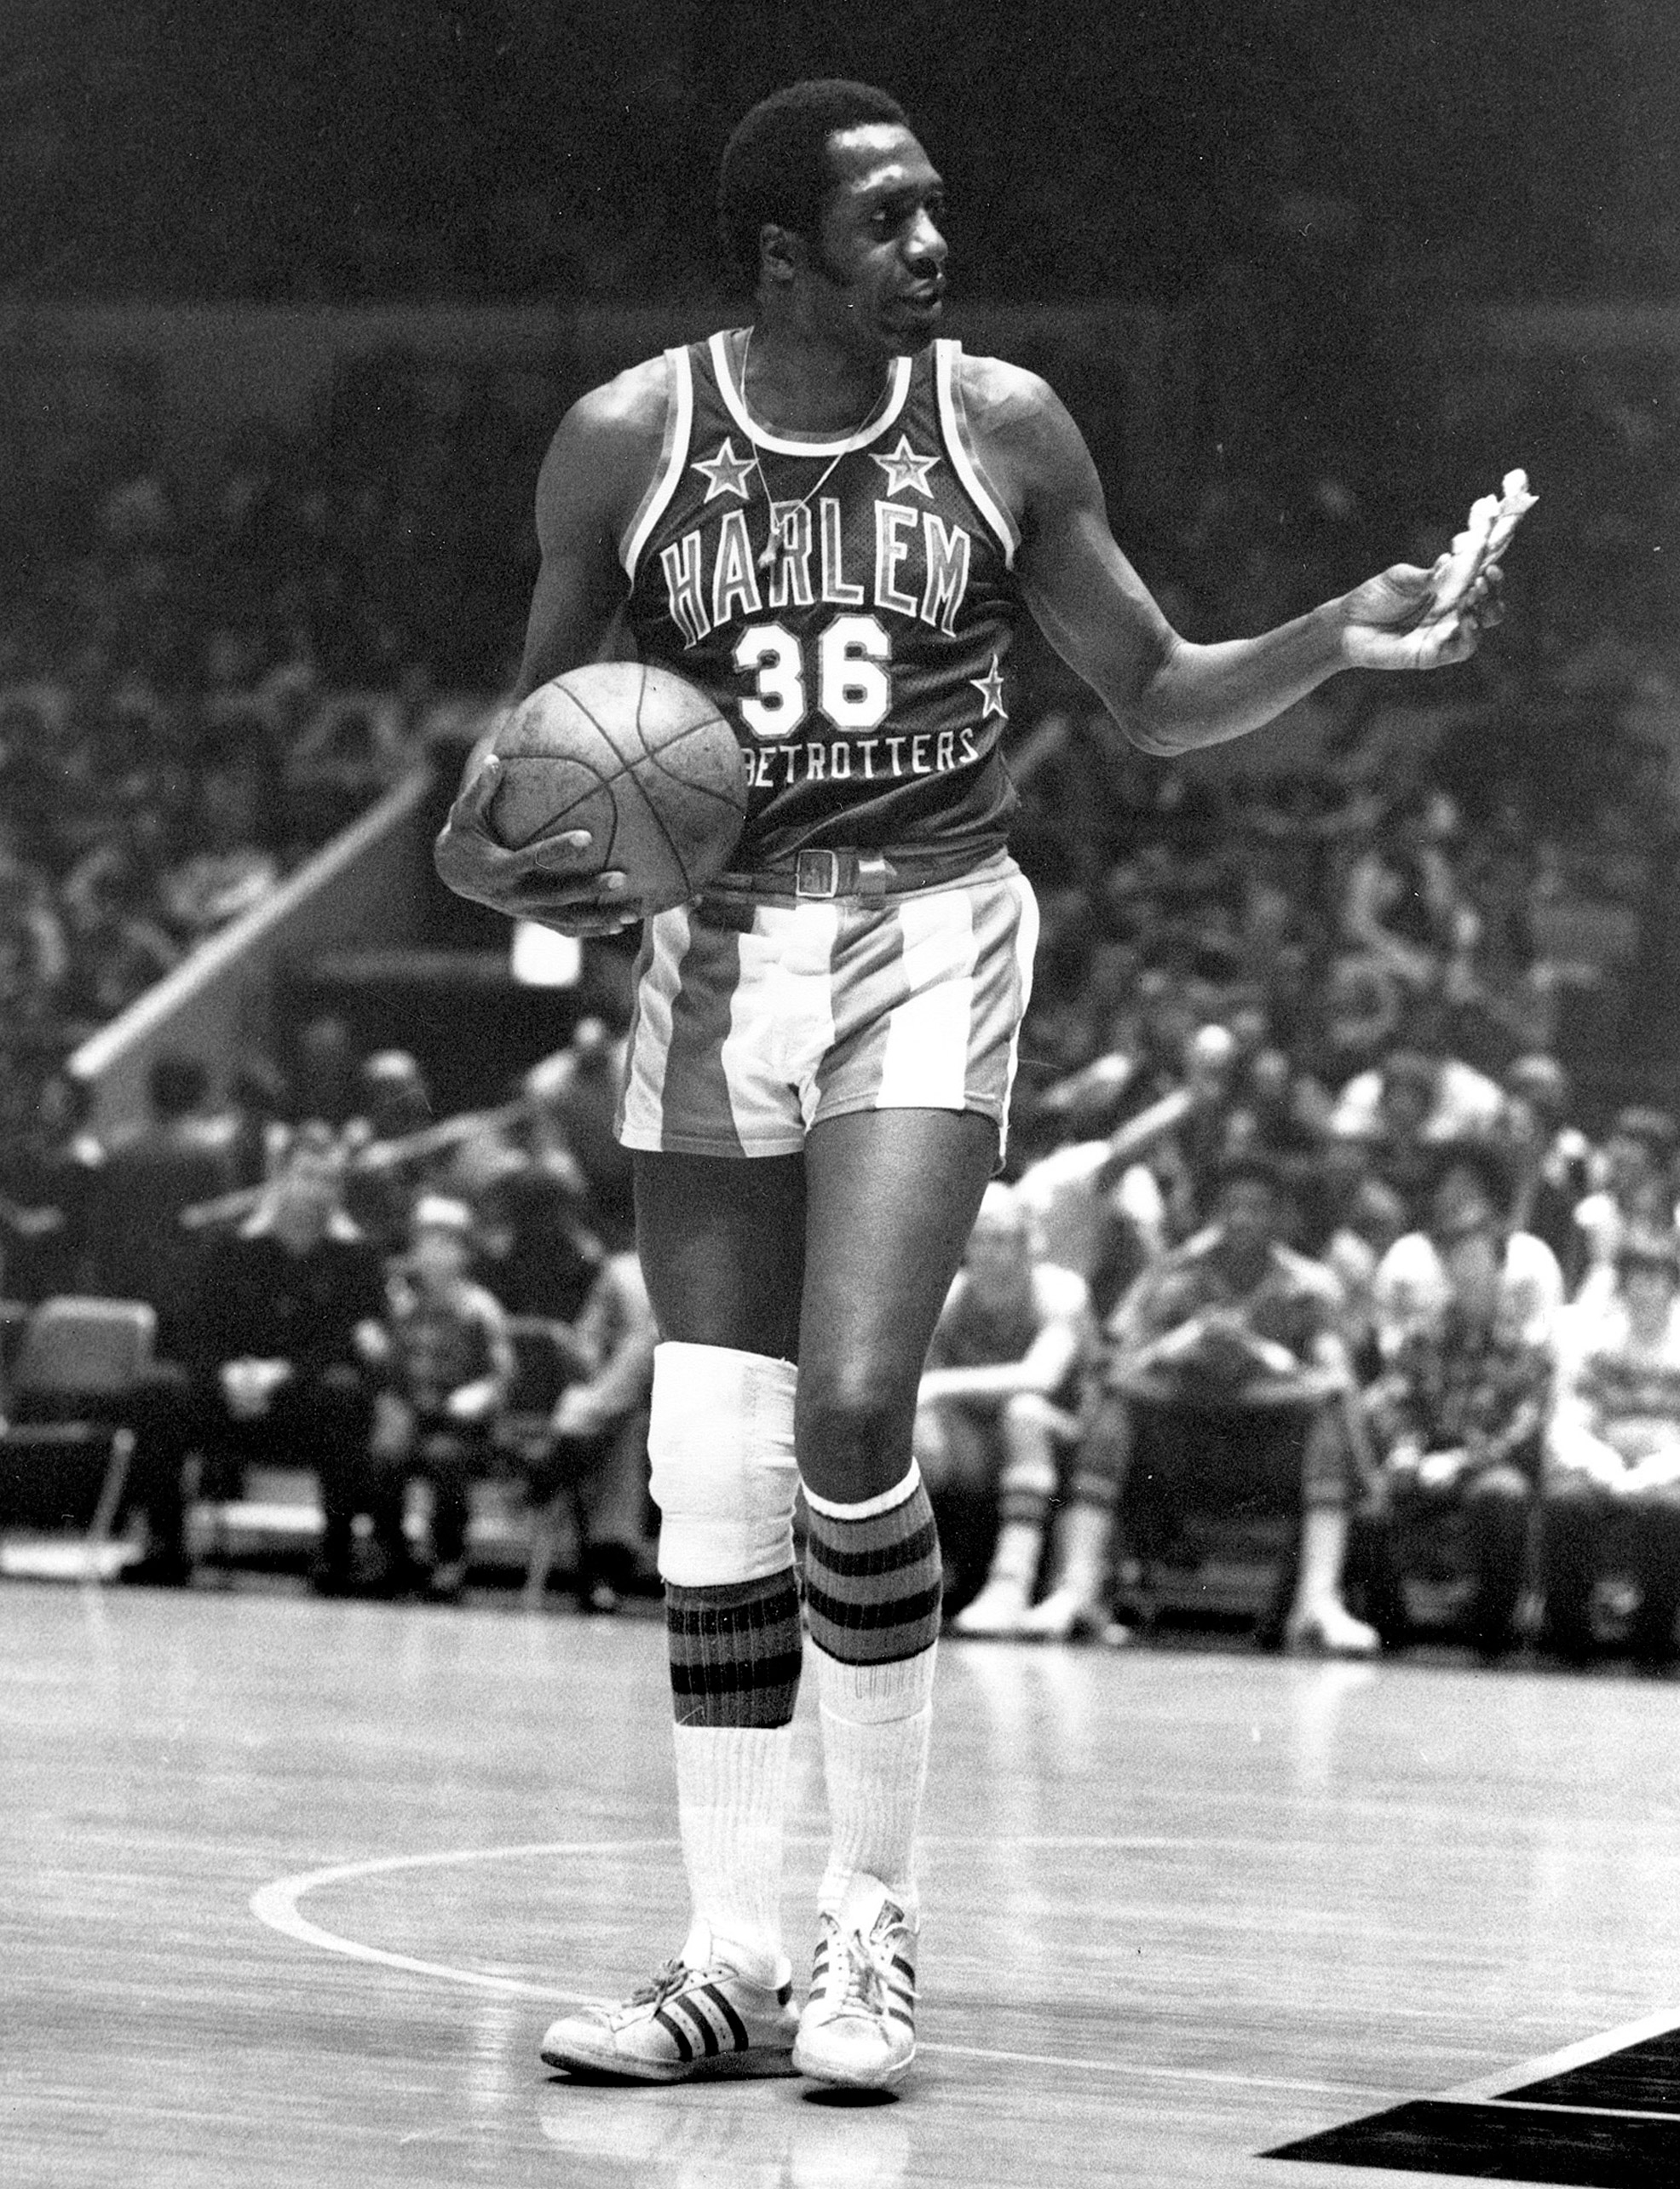 Meadowlark Lemon of the Harlem Globetrotters basketball team offers a pretzel to a referee during a game at New York's Madison Square Garden in New York on Feb. 18, 1978.